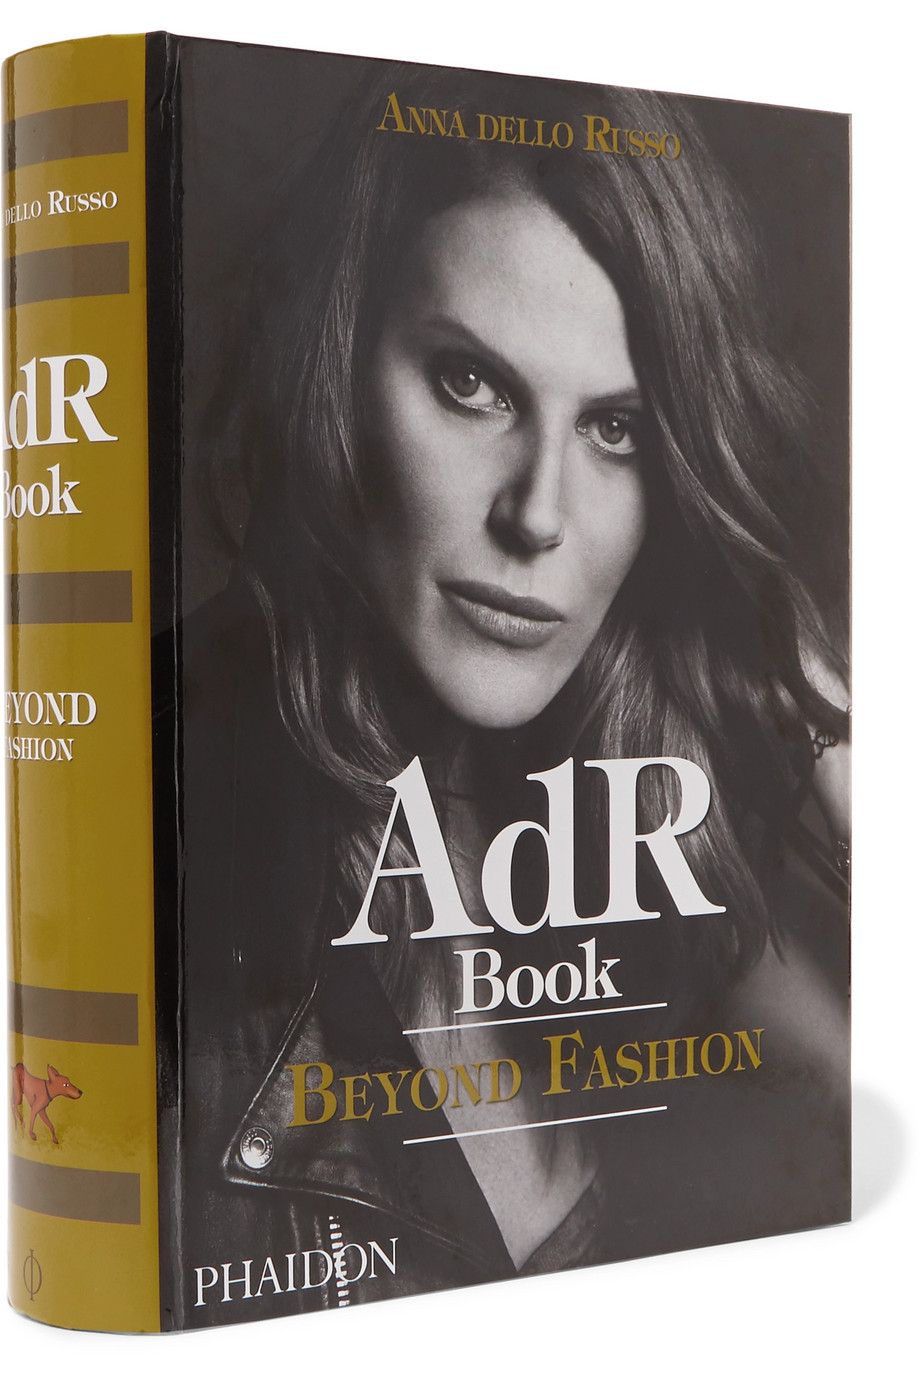 Phaidon AdR: Beyond Fashion hardcover book